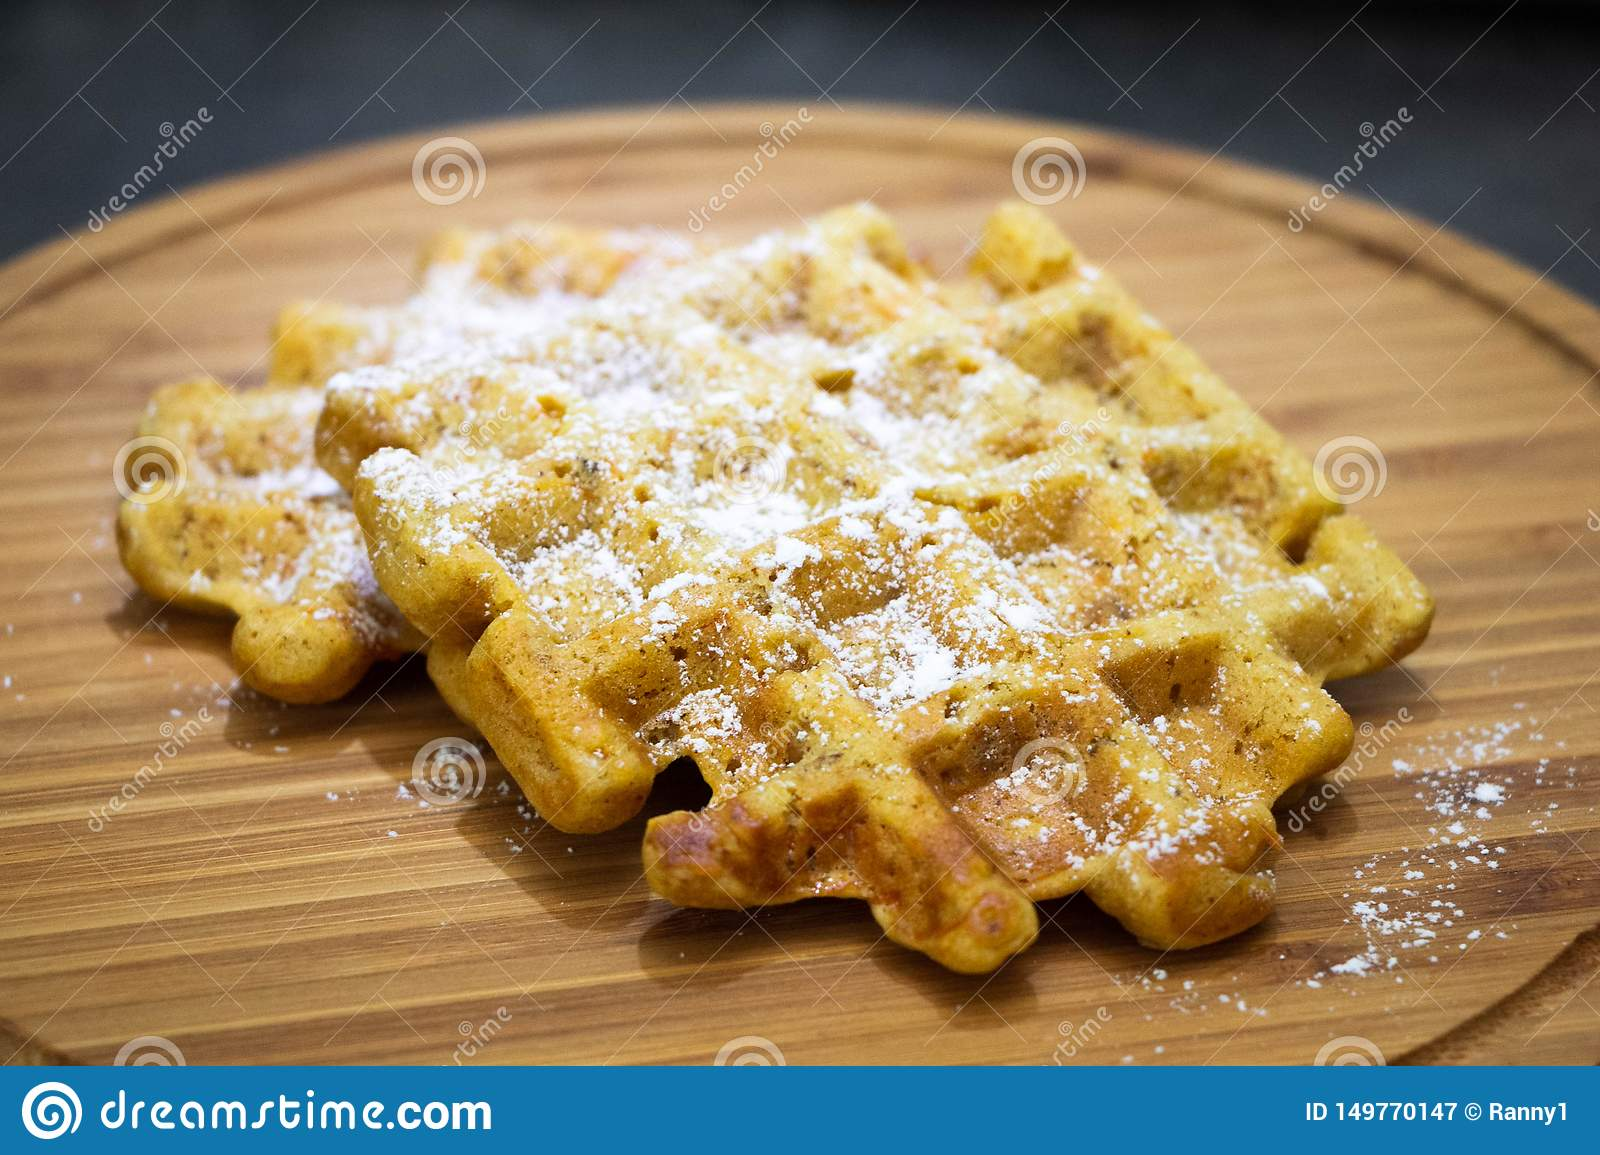 Carrot waffles with powdered sugar on a wooden boardPerfect healthy breakfast